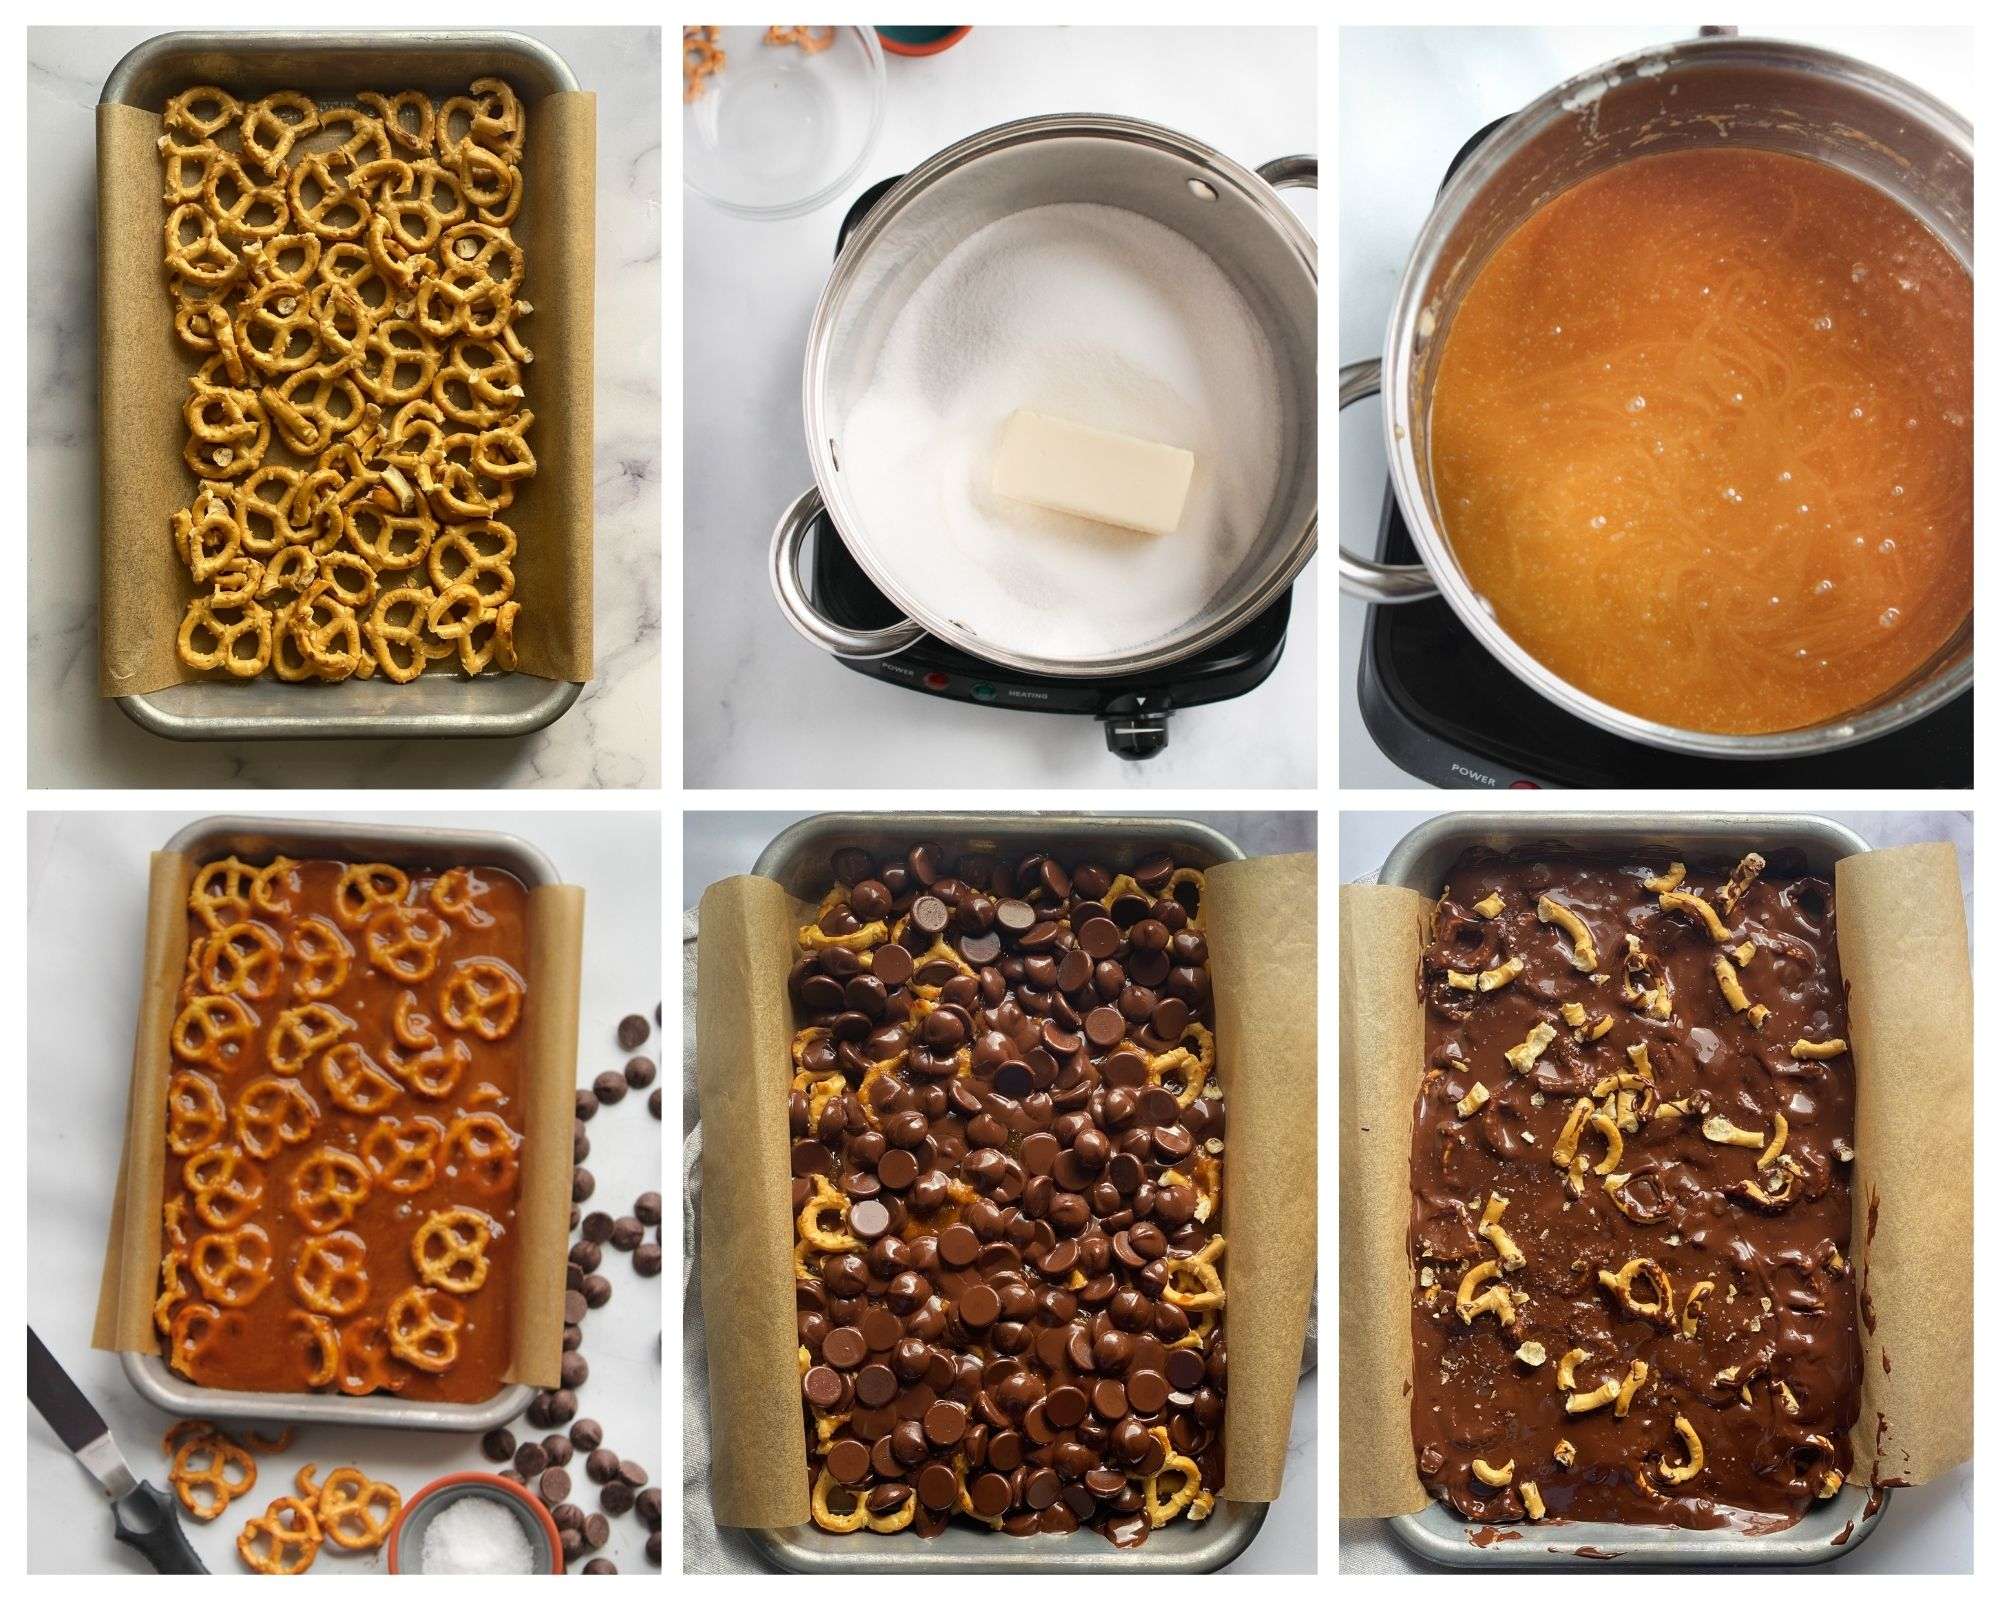 Steps to making chocolate cover pretzel toffee bark. 1. Spread the pretzels. 2. Combine the butter, brown sugar and vanilla into a pot. 3. Stir until it becomes bubbly. 4. Place the pan into a 325 degree oven for 5 minutes. 5. Add the chocolate chips to the top and return it to the oven for another 1-2 minutes to melt. 6. Spread the chocolate smooth and top with additional crushed pretzels and sea salt if desired and let it cool.